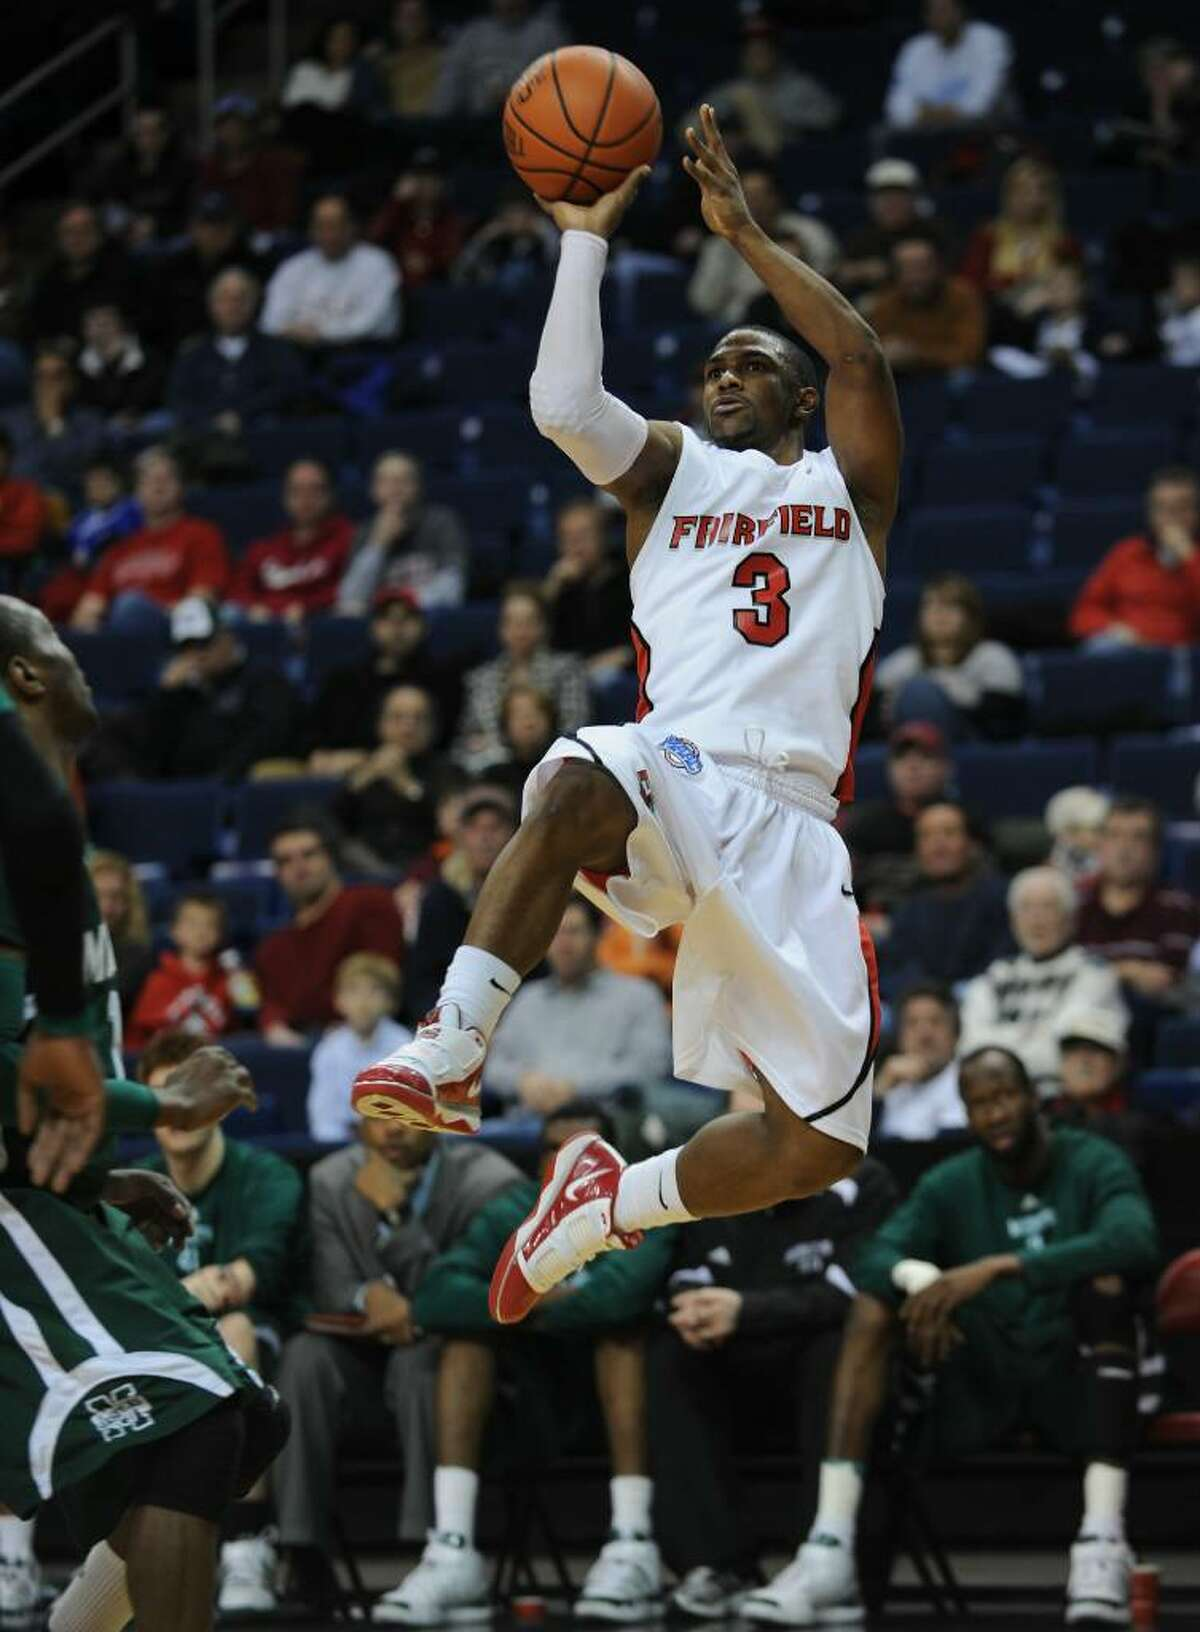 Derek Needham- Fairfield U. vs. Manhattan basketball